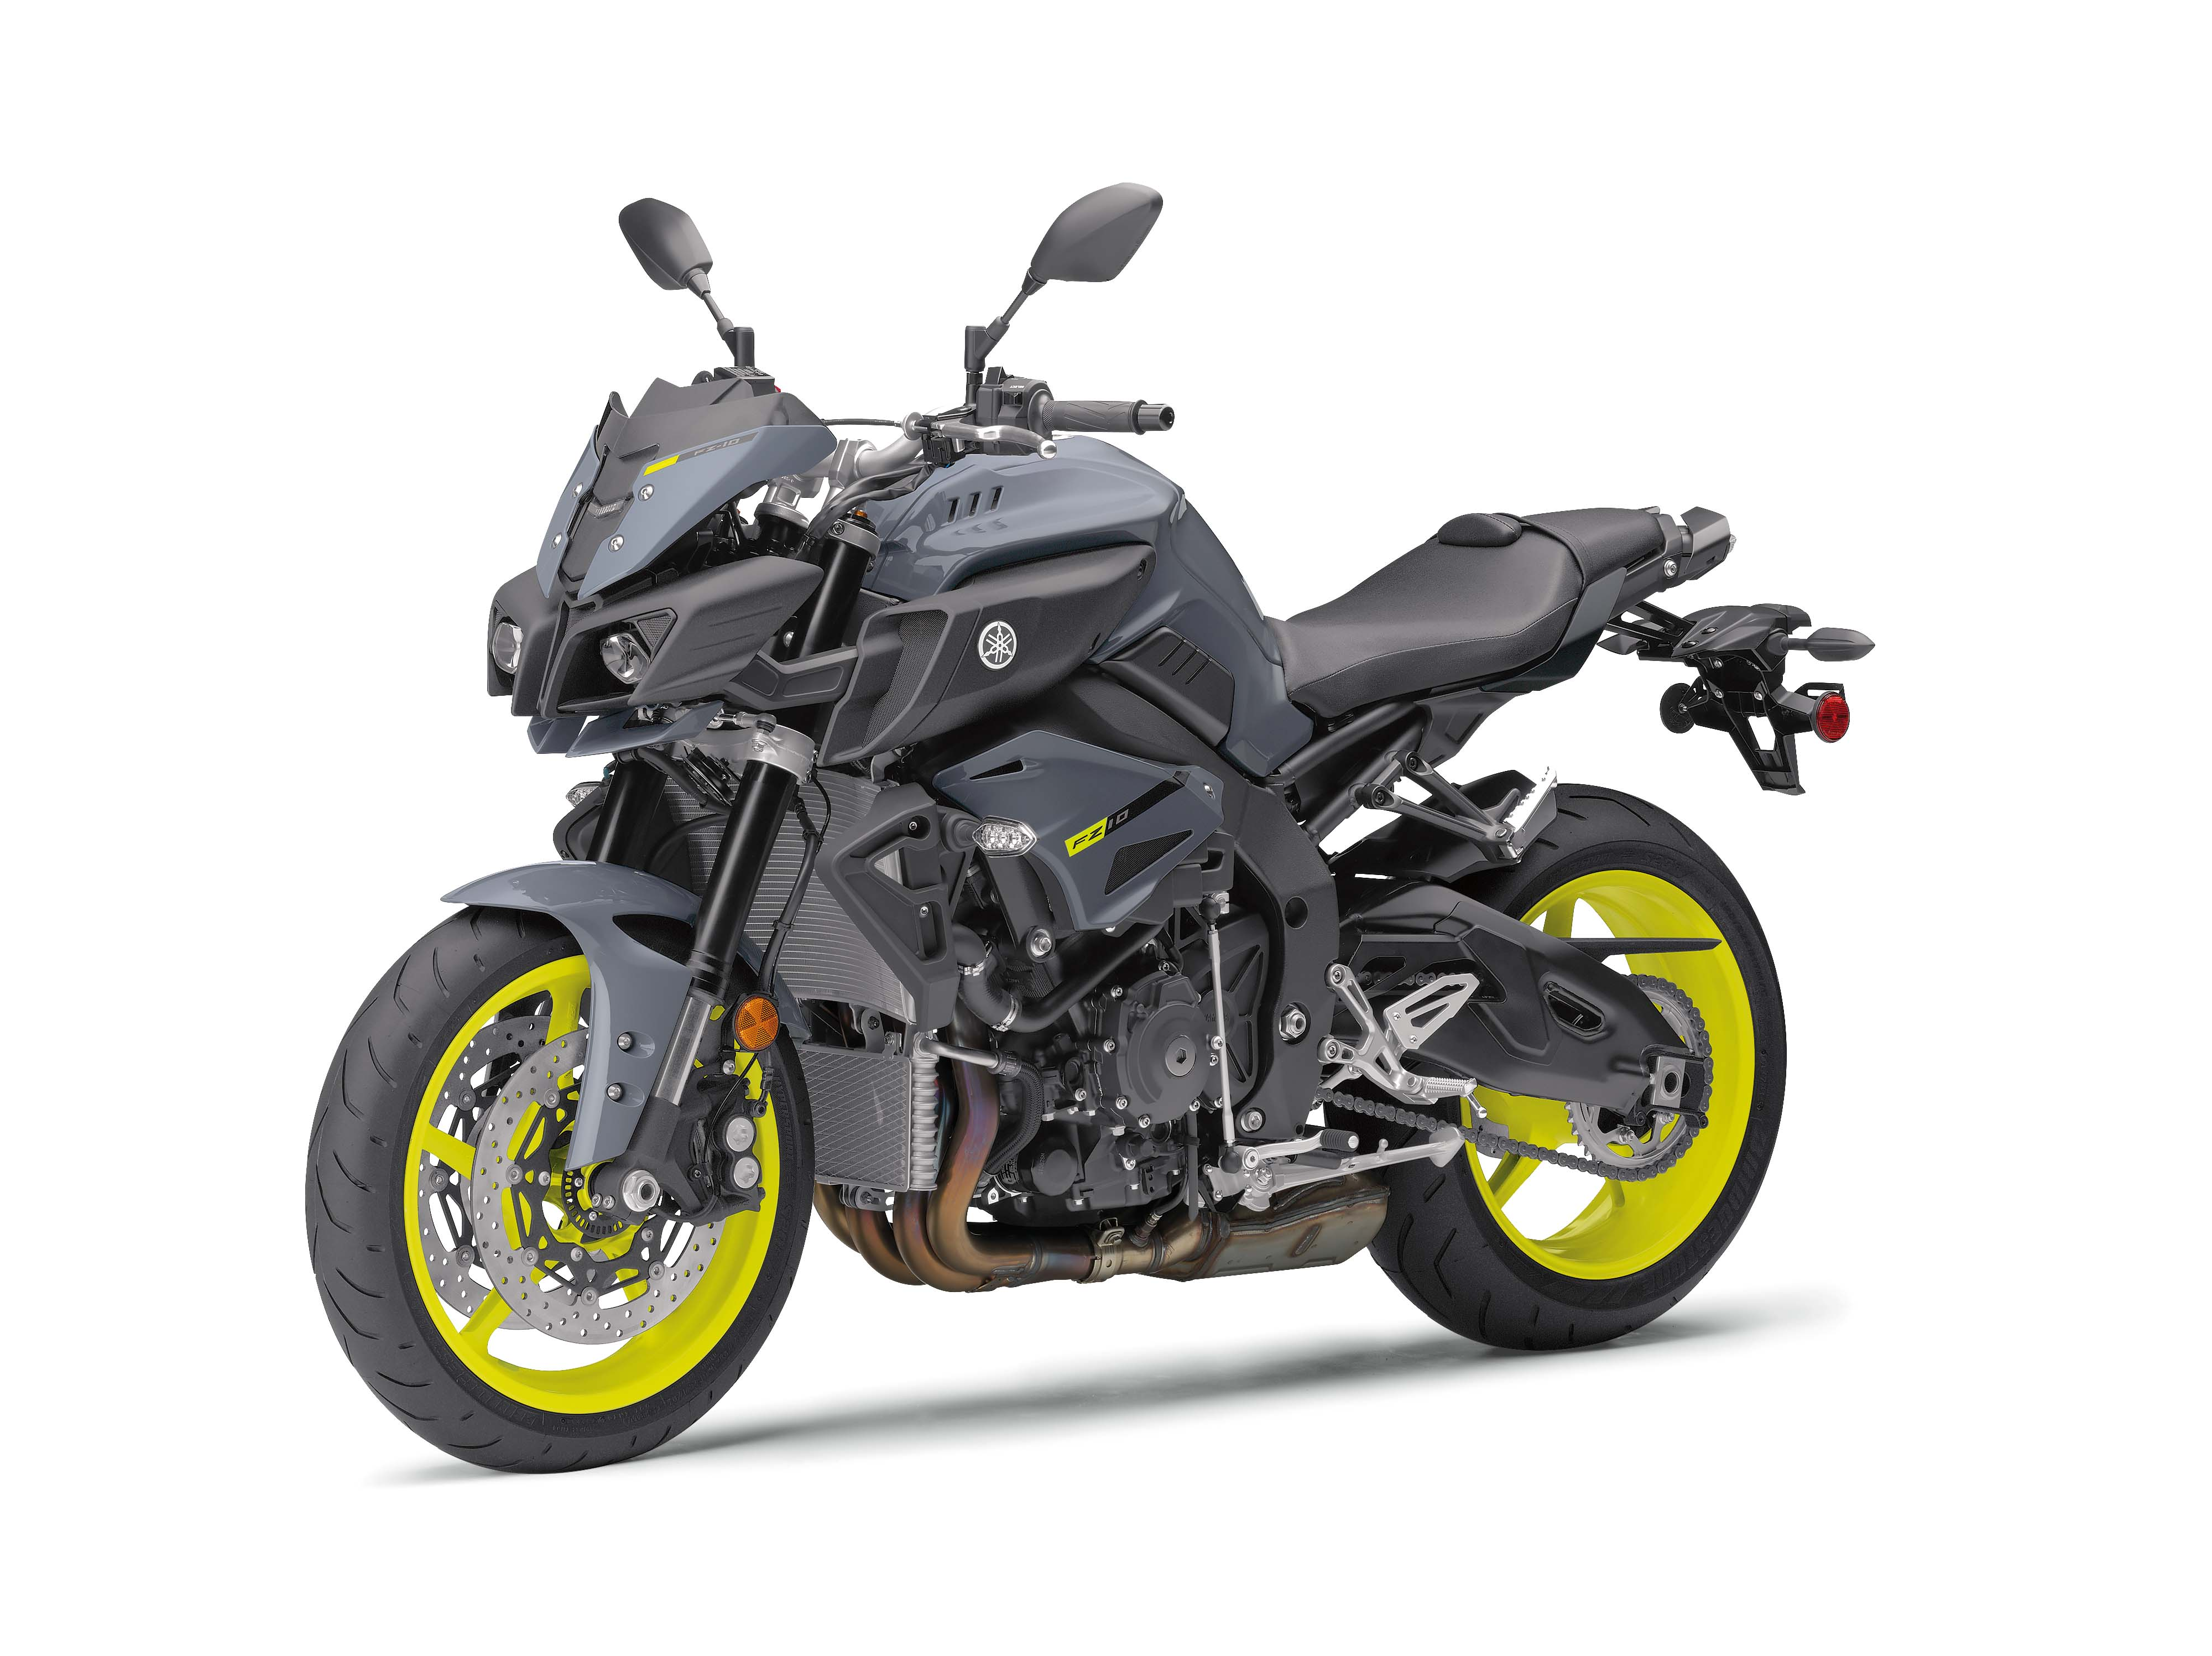 Yamaha Fz Usa Price